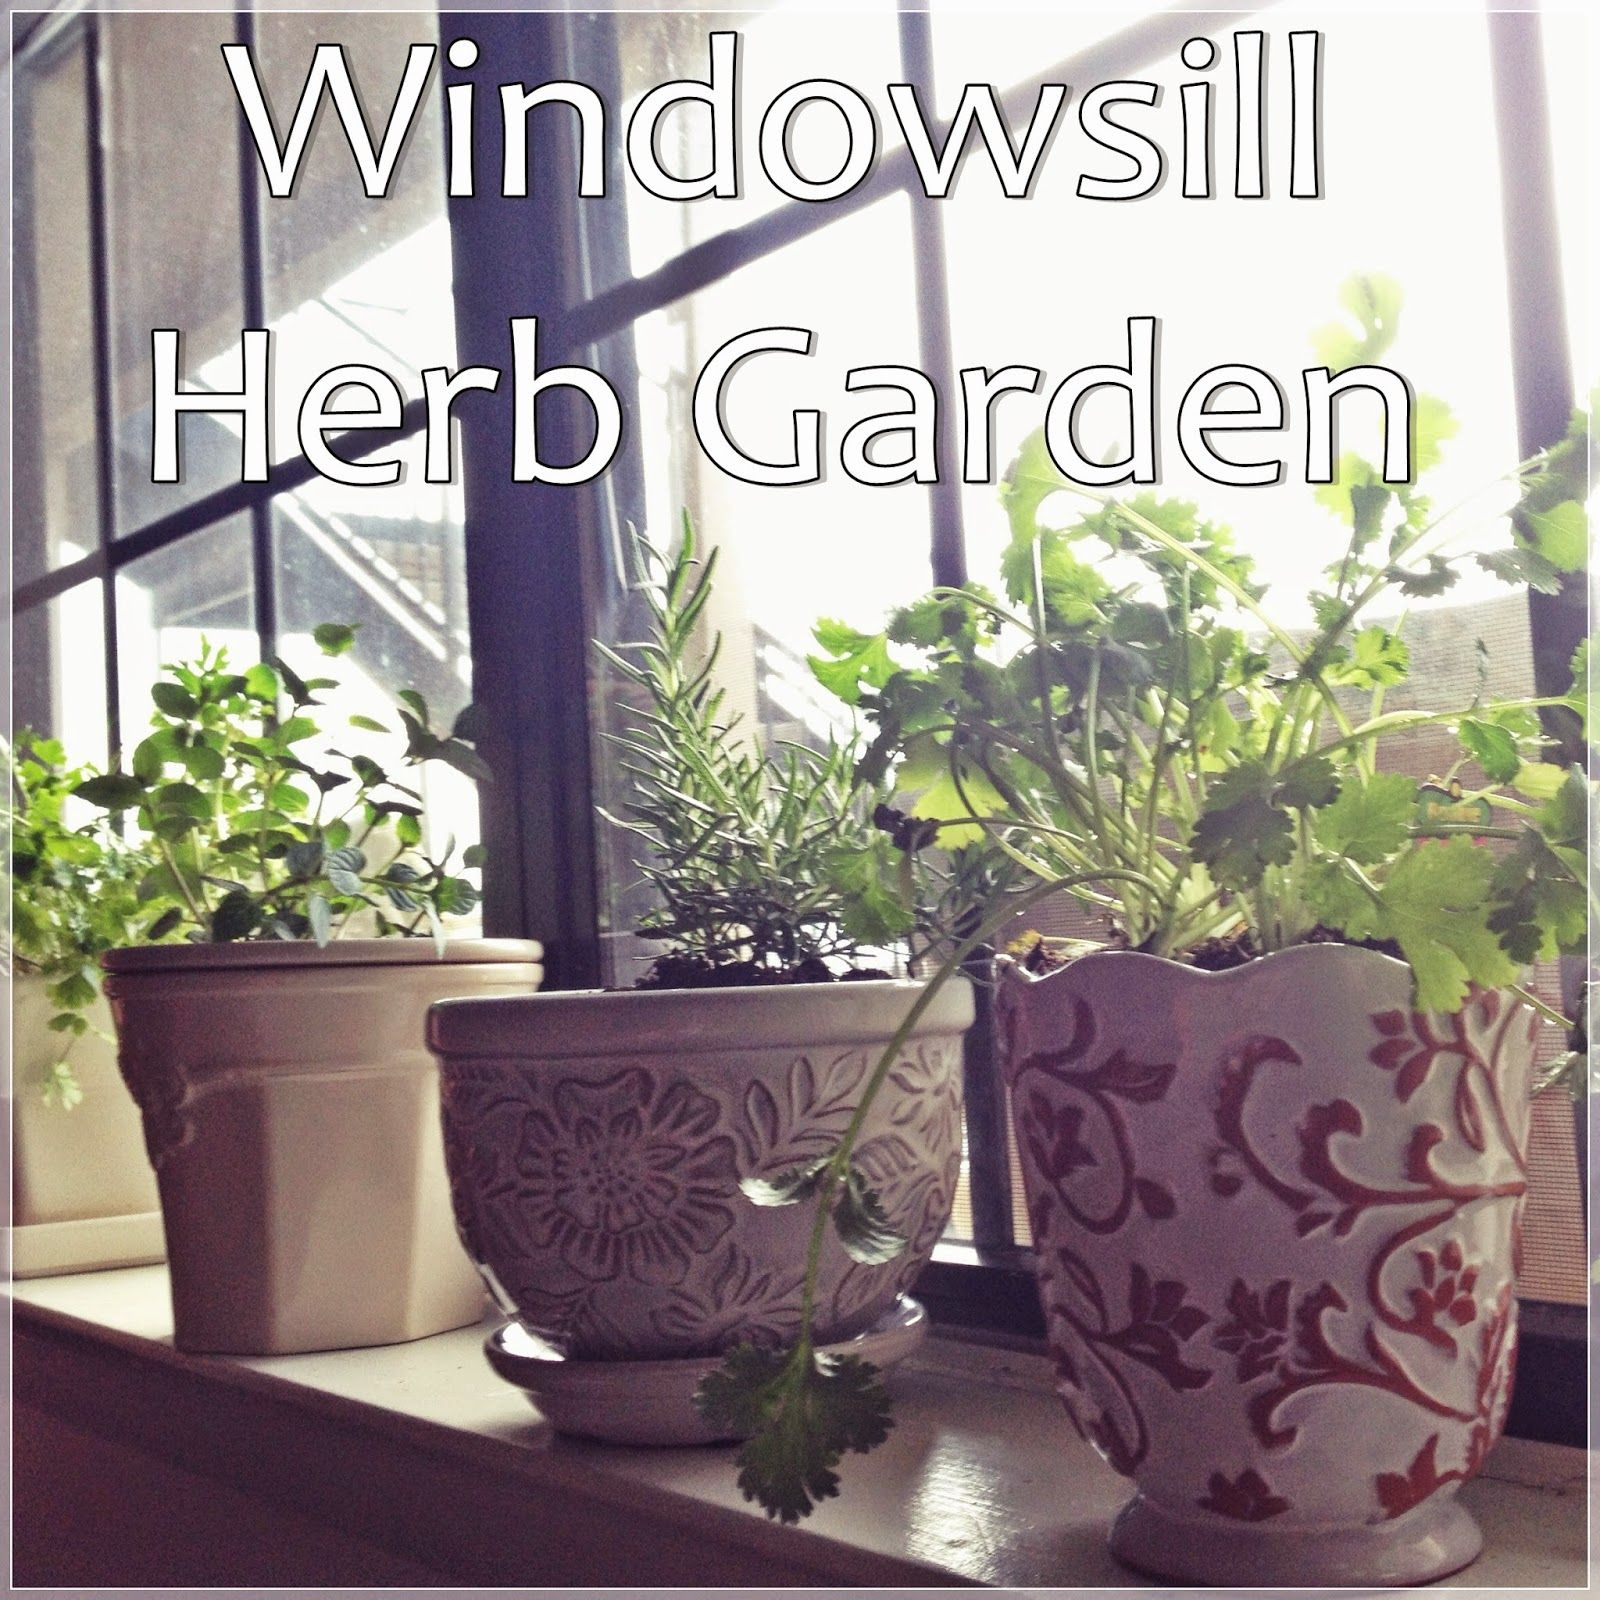 Windowsill Herb Garden - great for apartment dwellers!  #apartmentliving #gardening